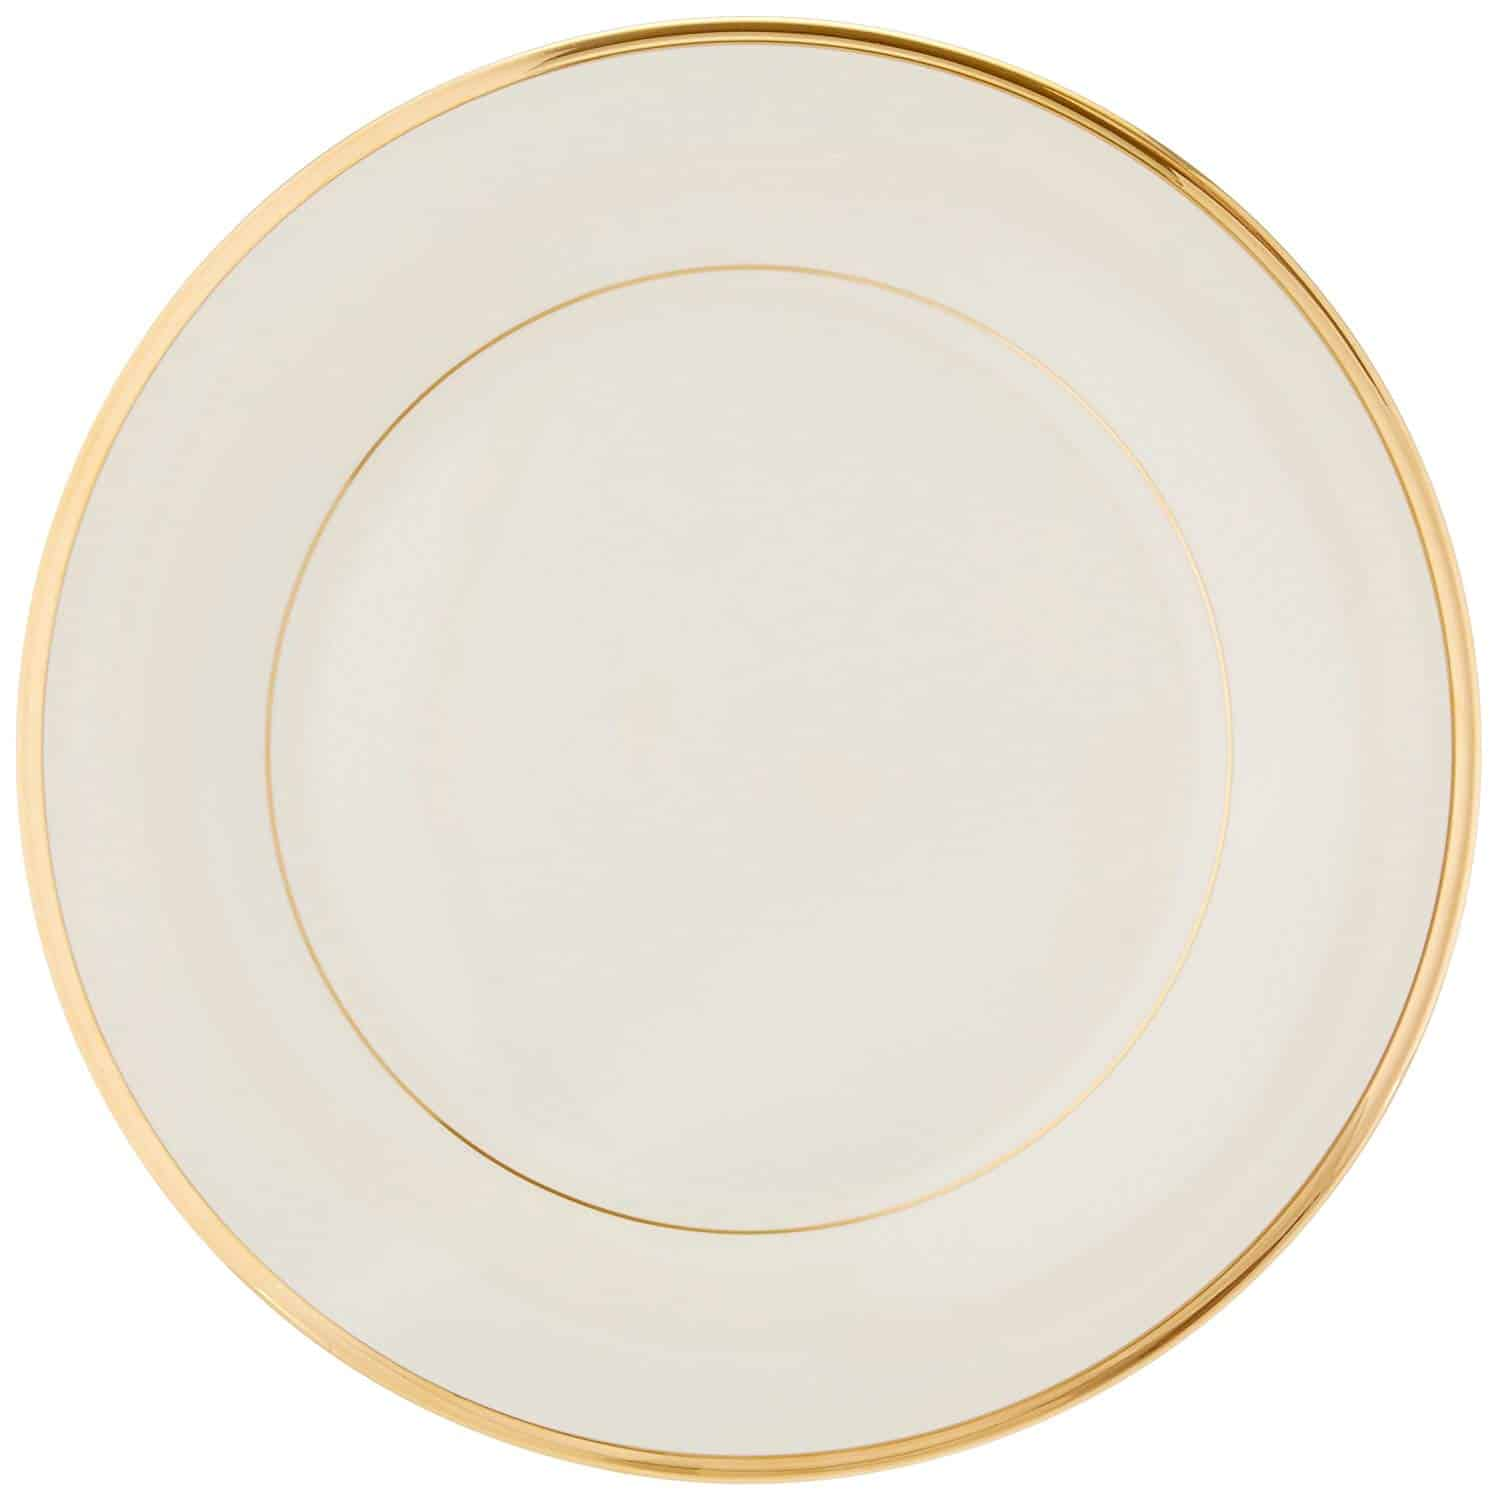 Lenox Eternal gold-banded fine china plate, banded elegantly in 24-karat gold.